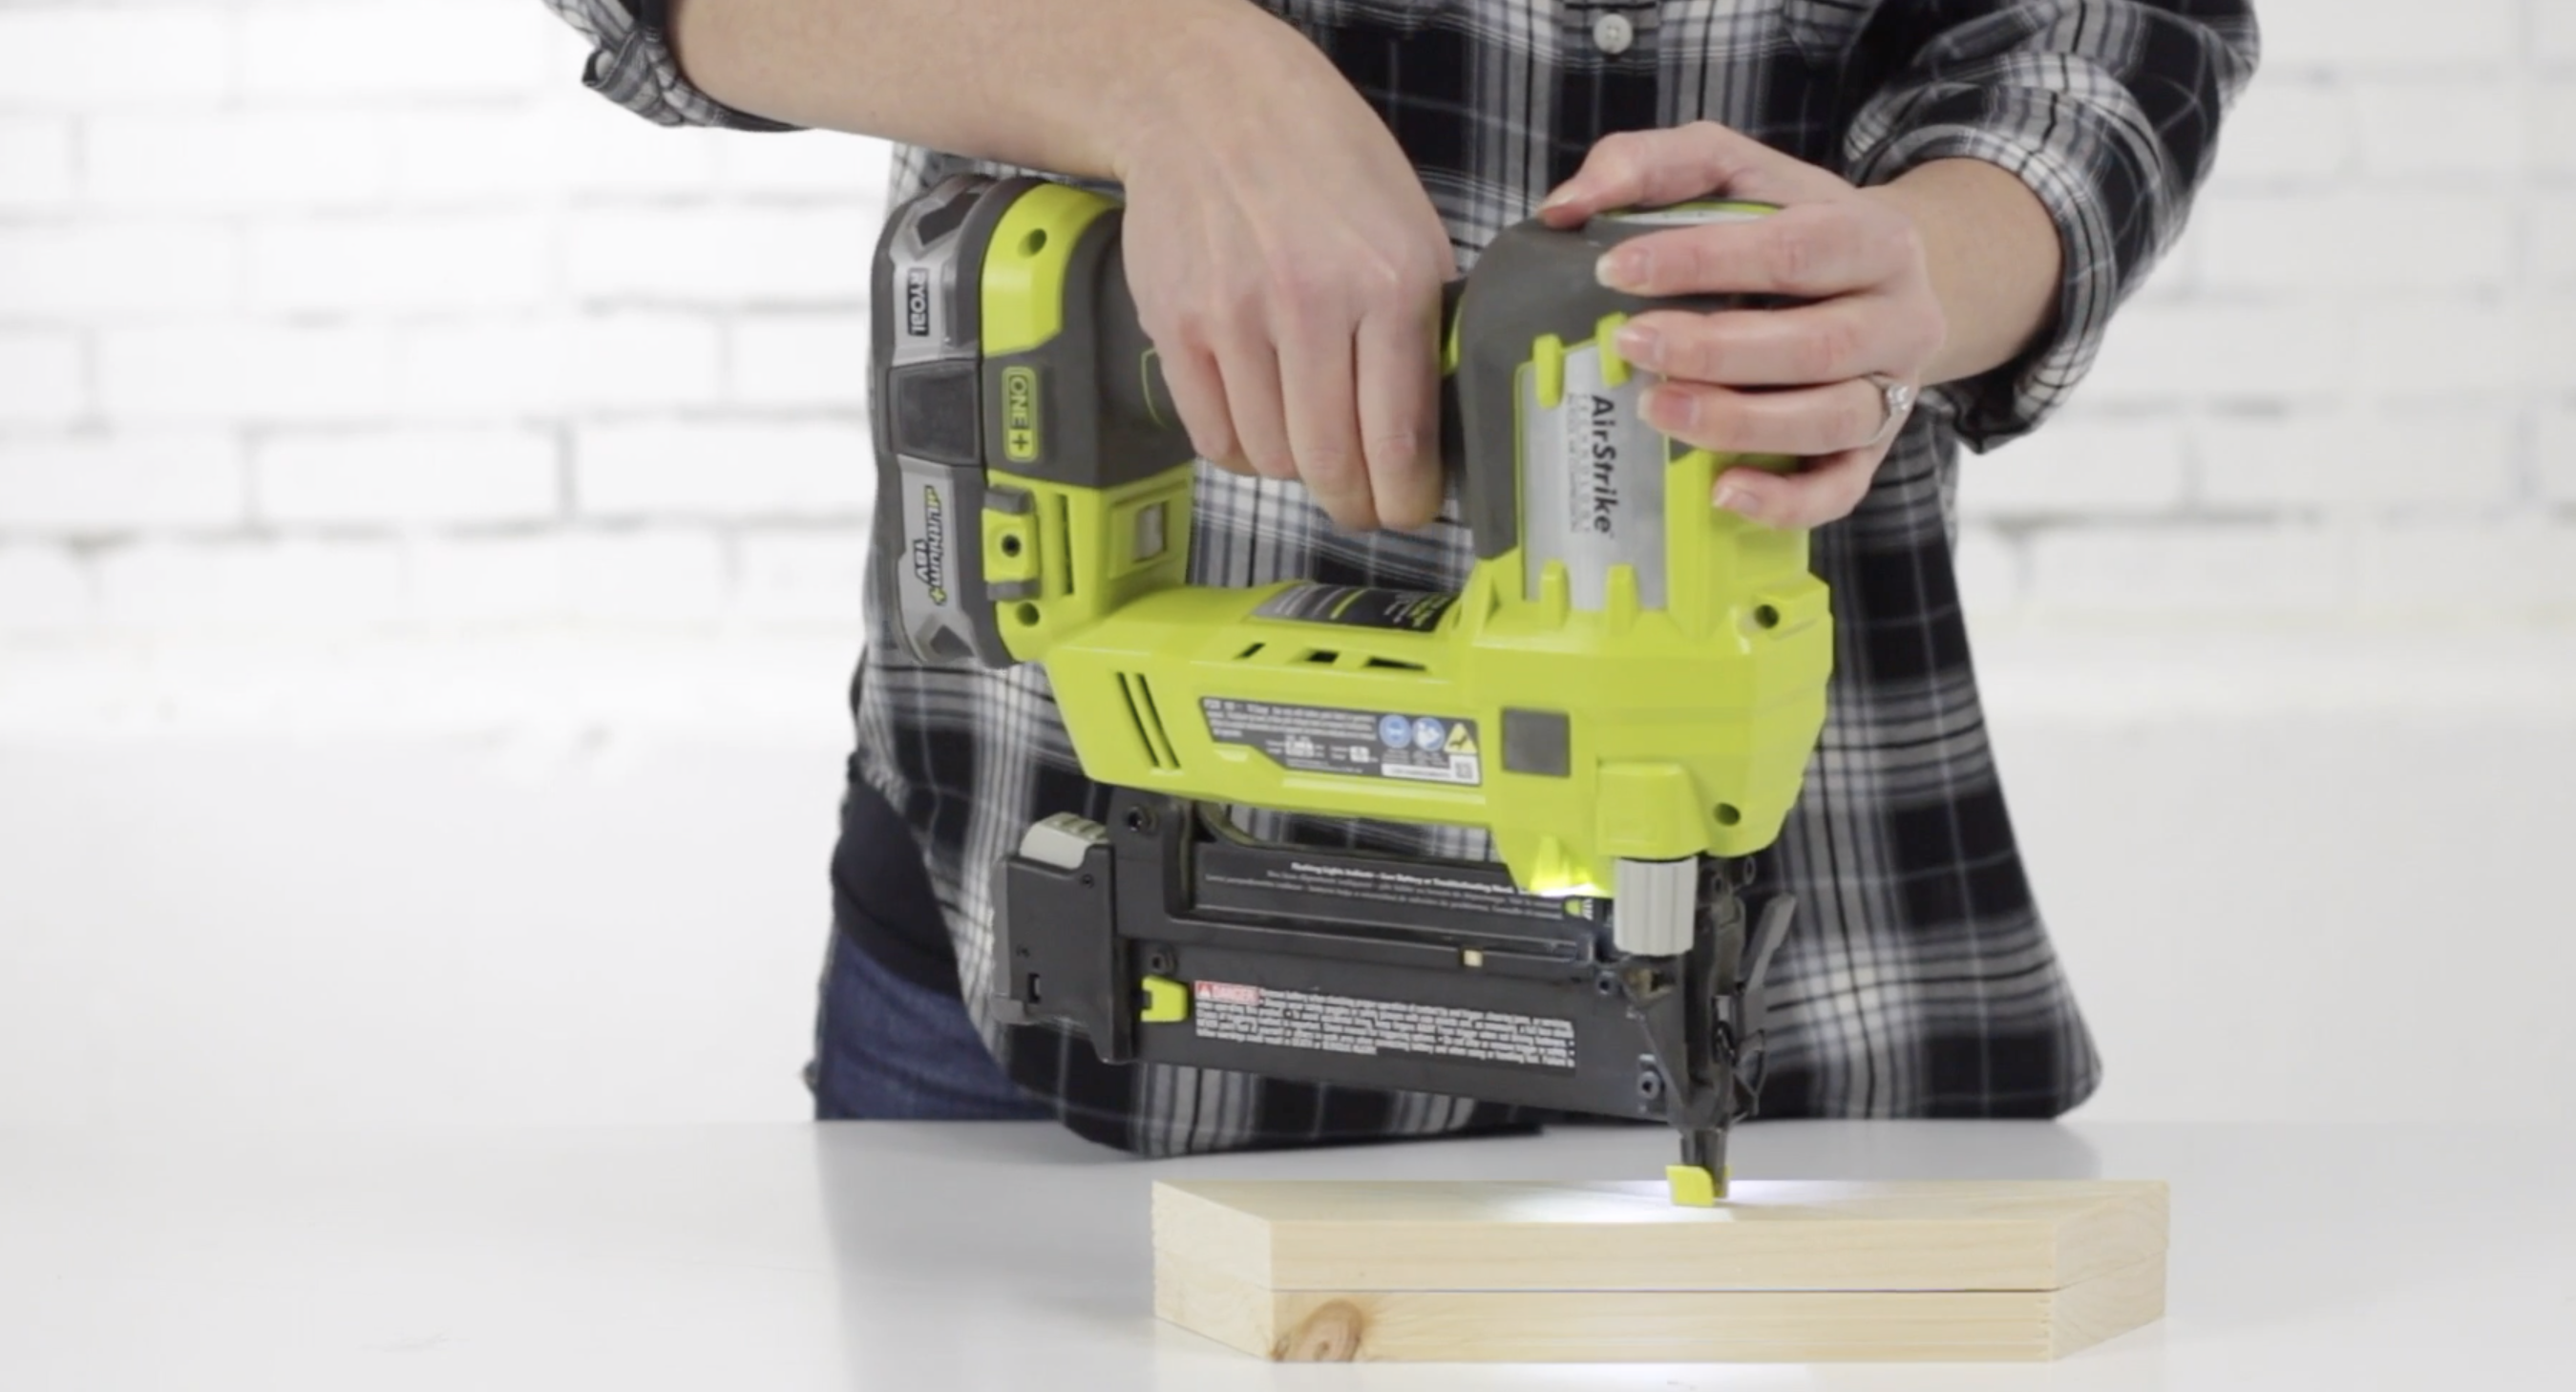 Jenn Largesse demonstrates how to use a pneumatic nailer.